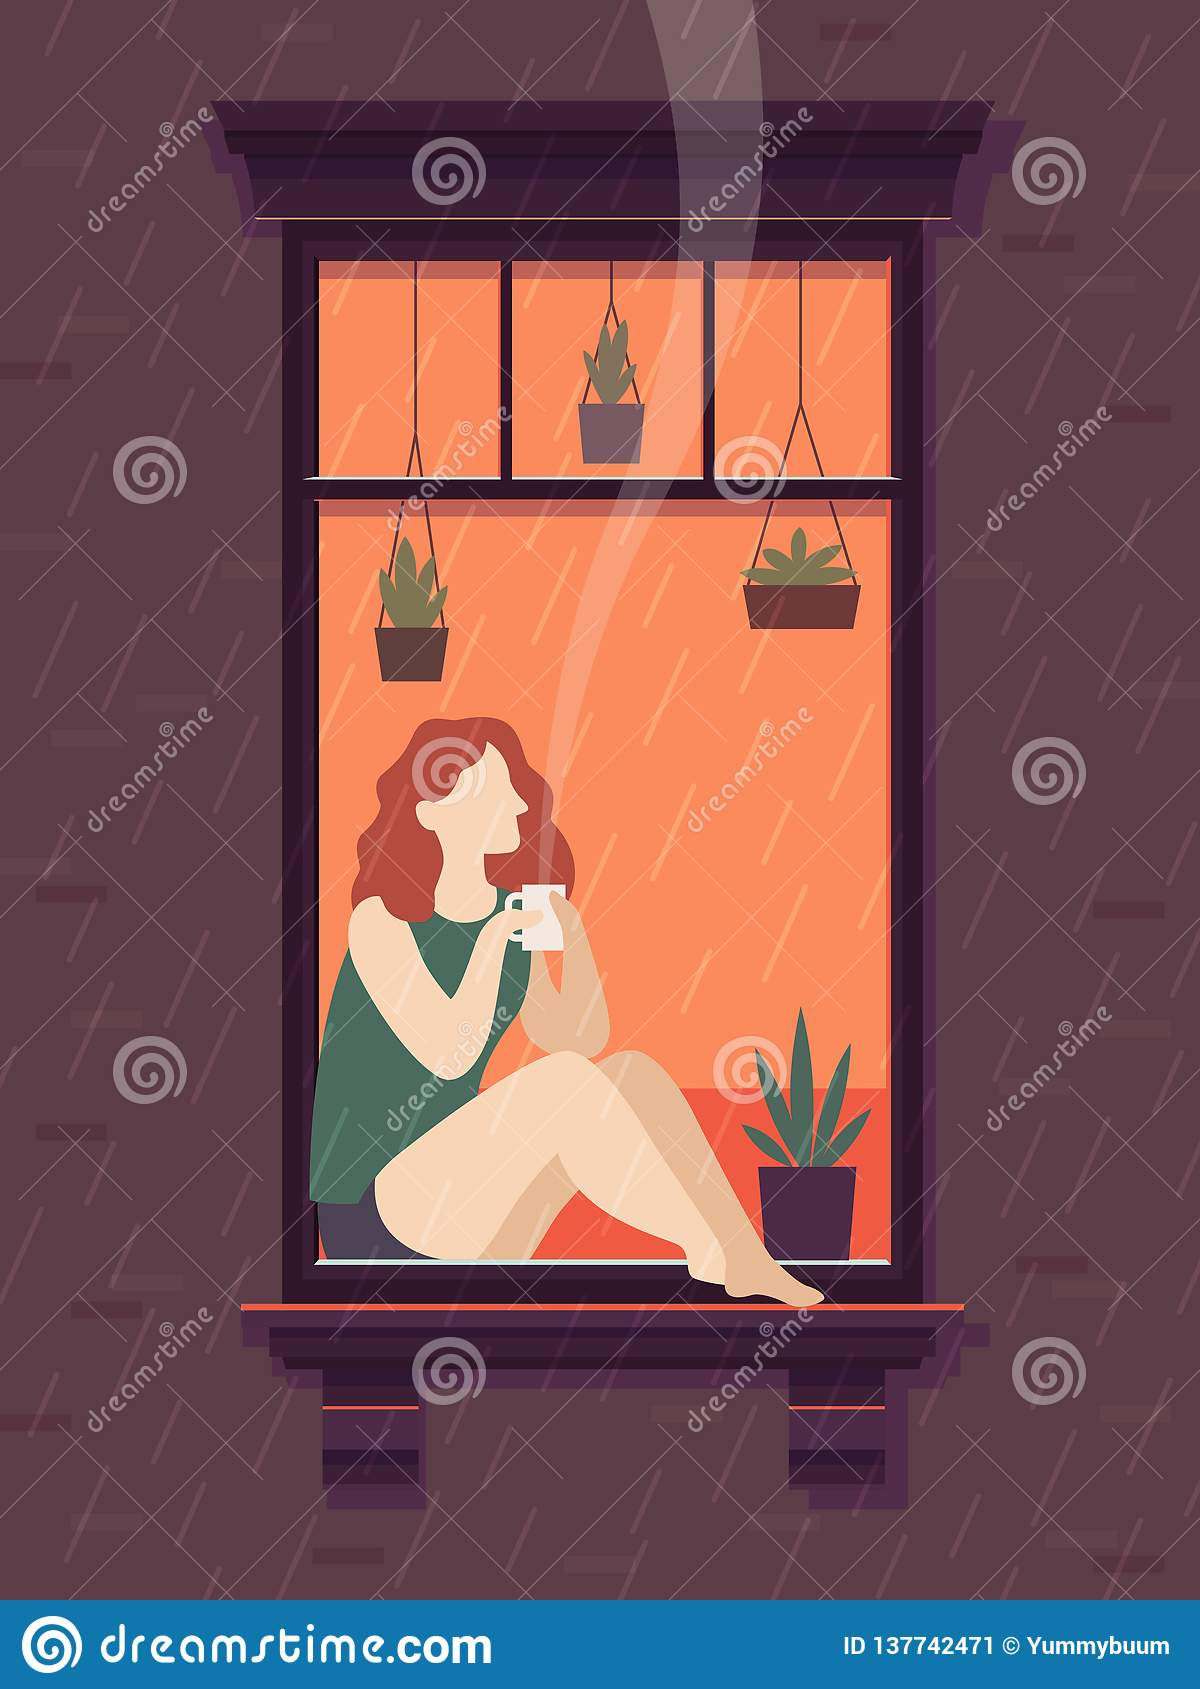 Girl at window with coffee. Windows person enjoy drinking coffee tea cup lonely time, cartoon vector illustration